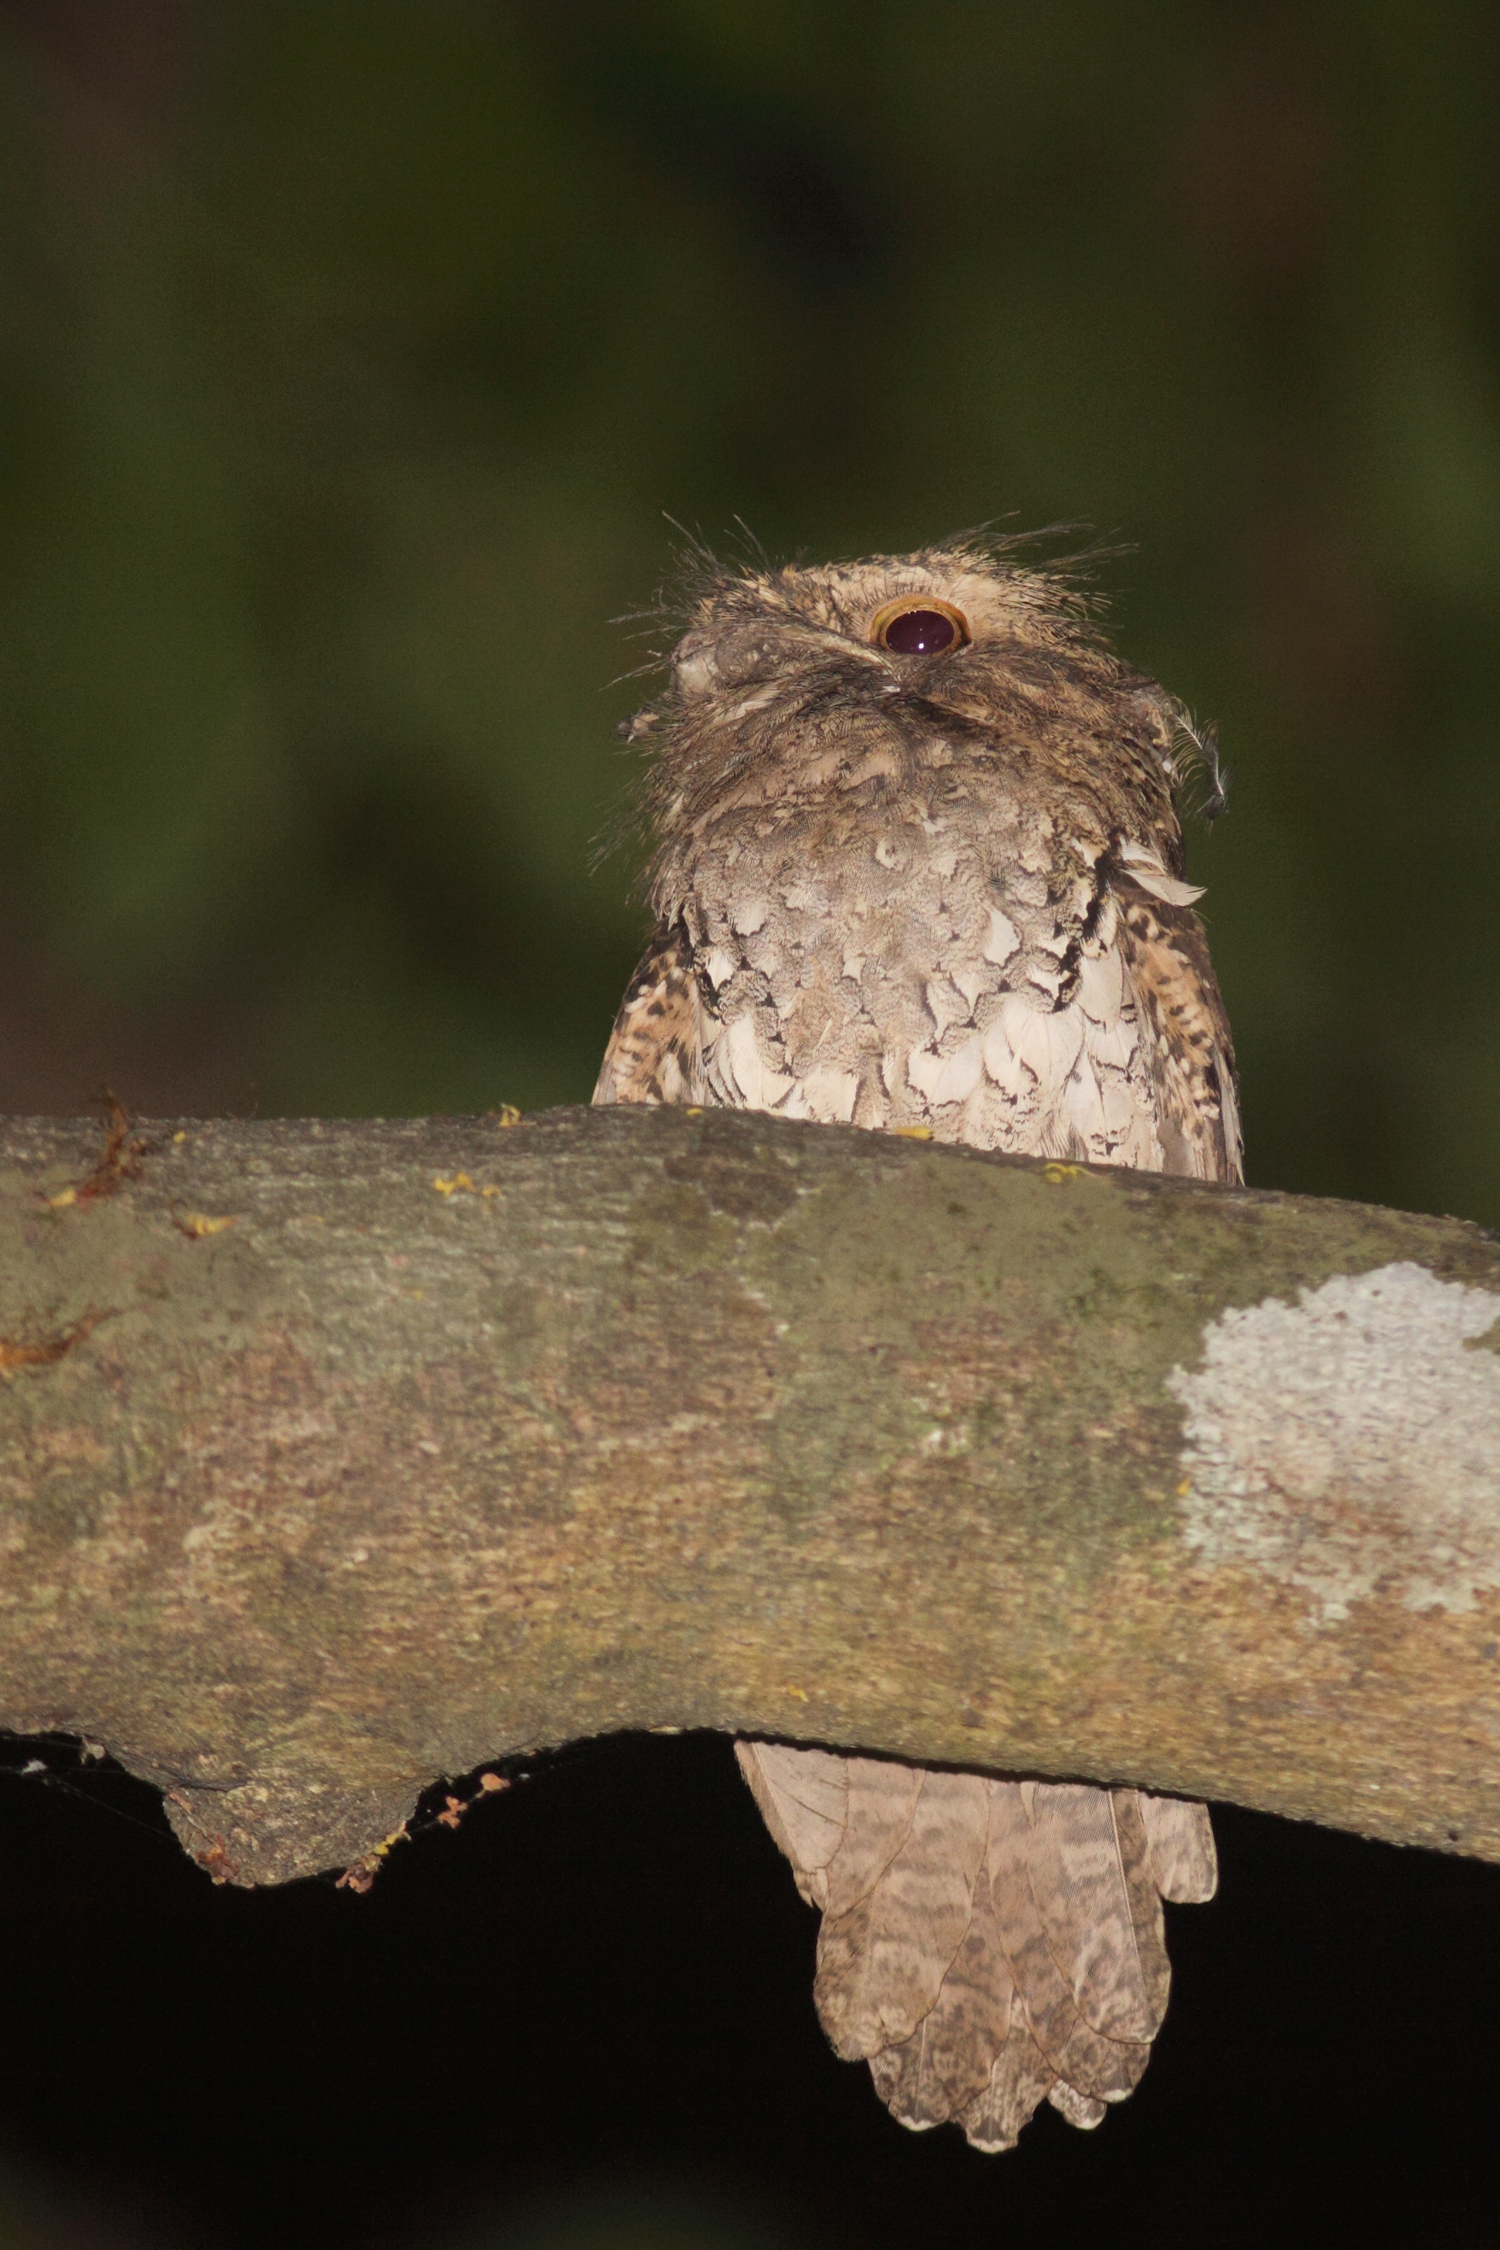 Finding this Philippine Frogmouth sitting silently on a low perch was a special bonus.